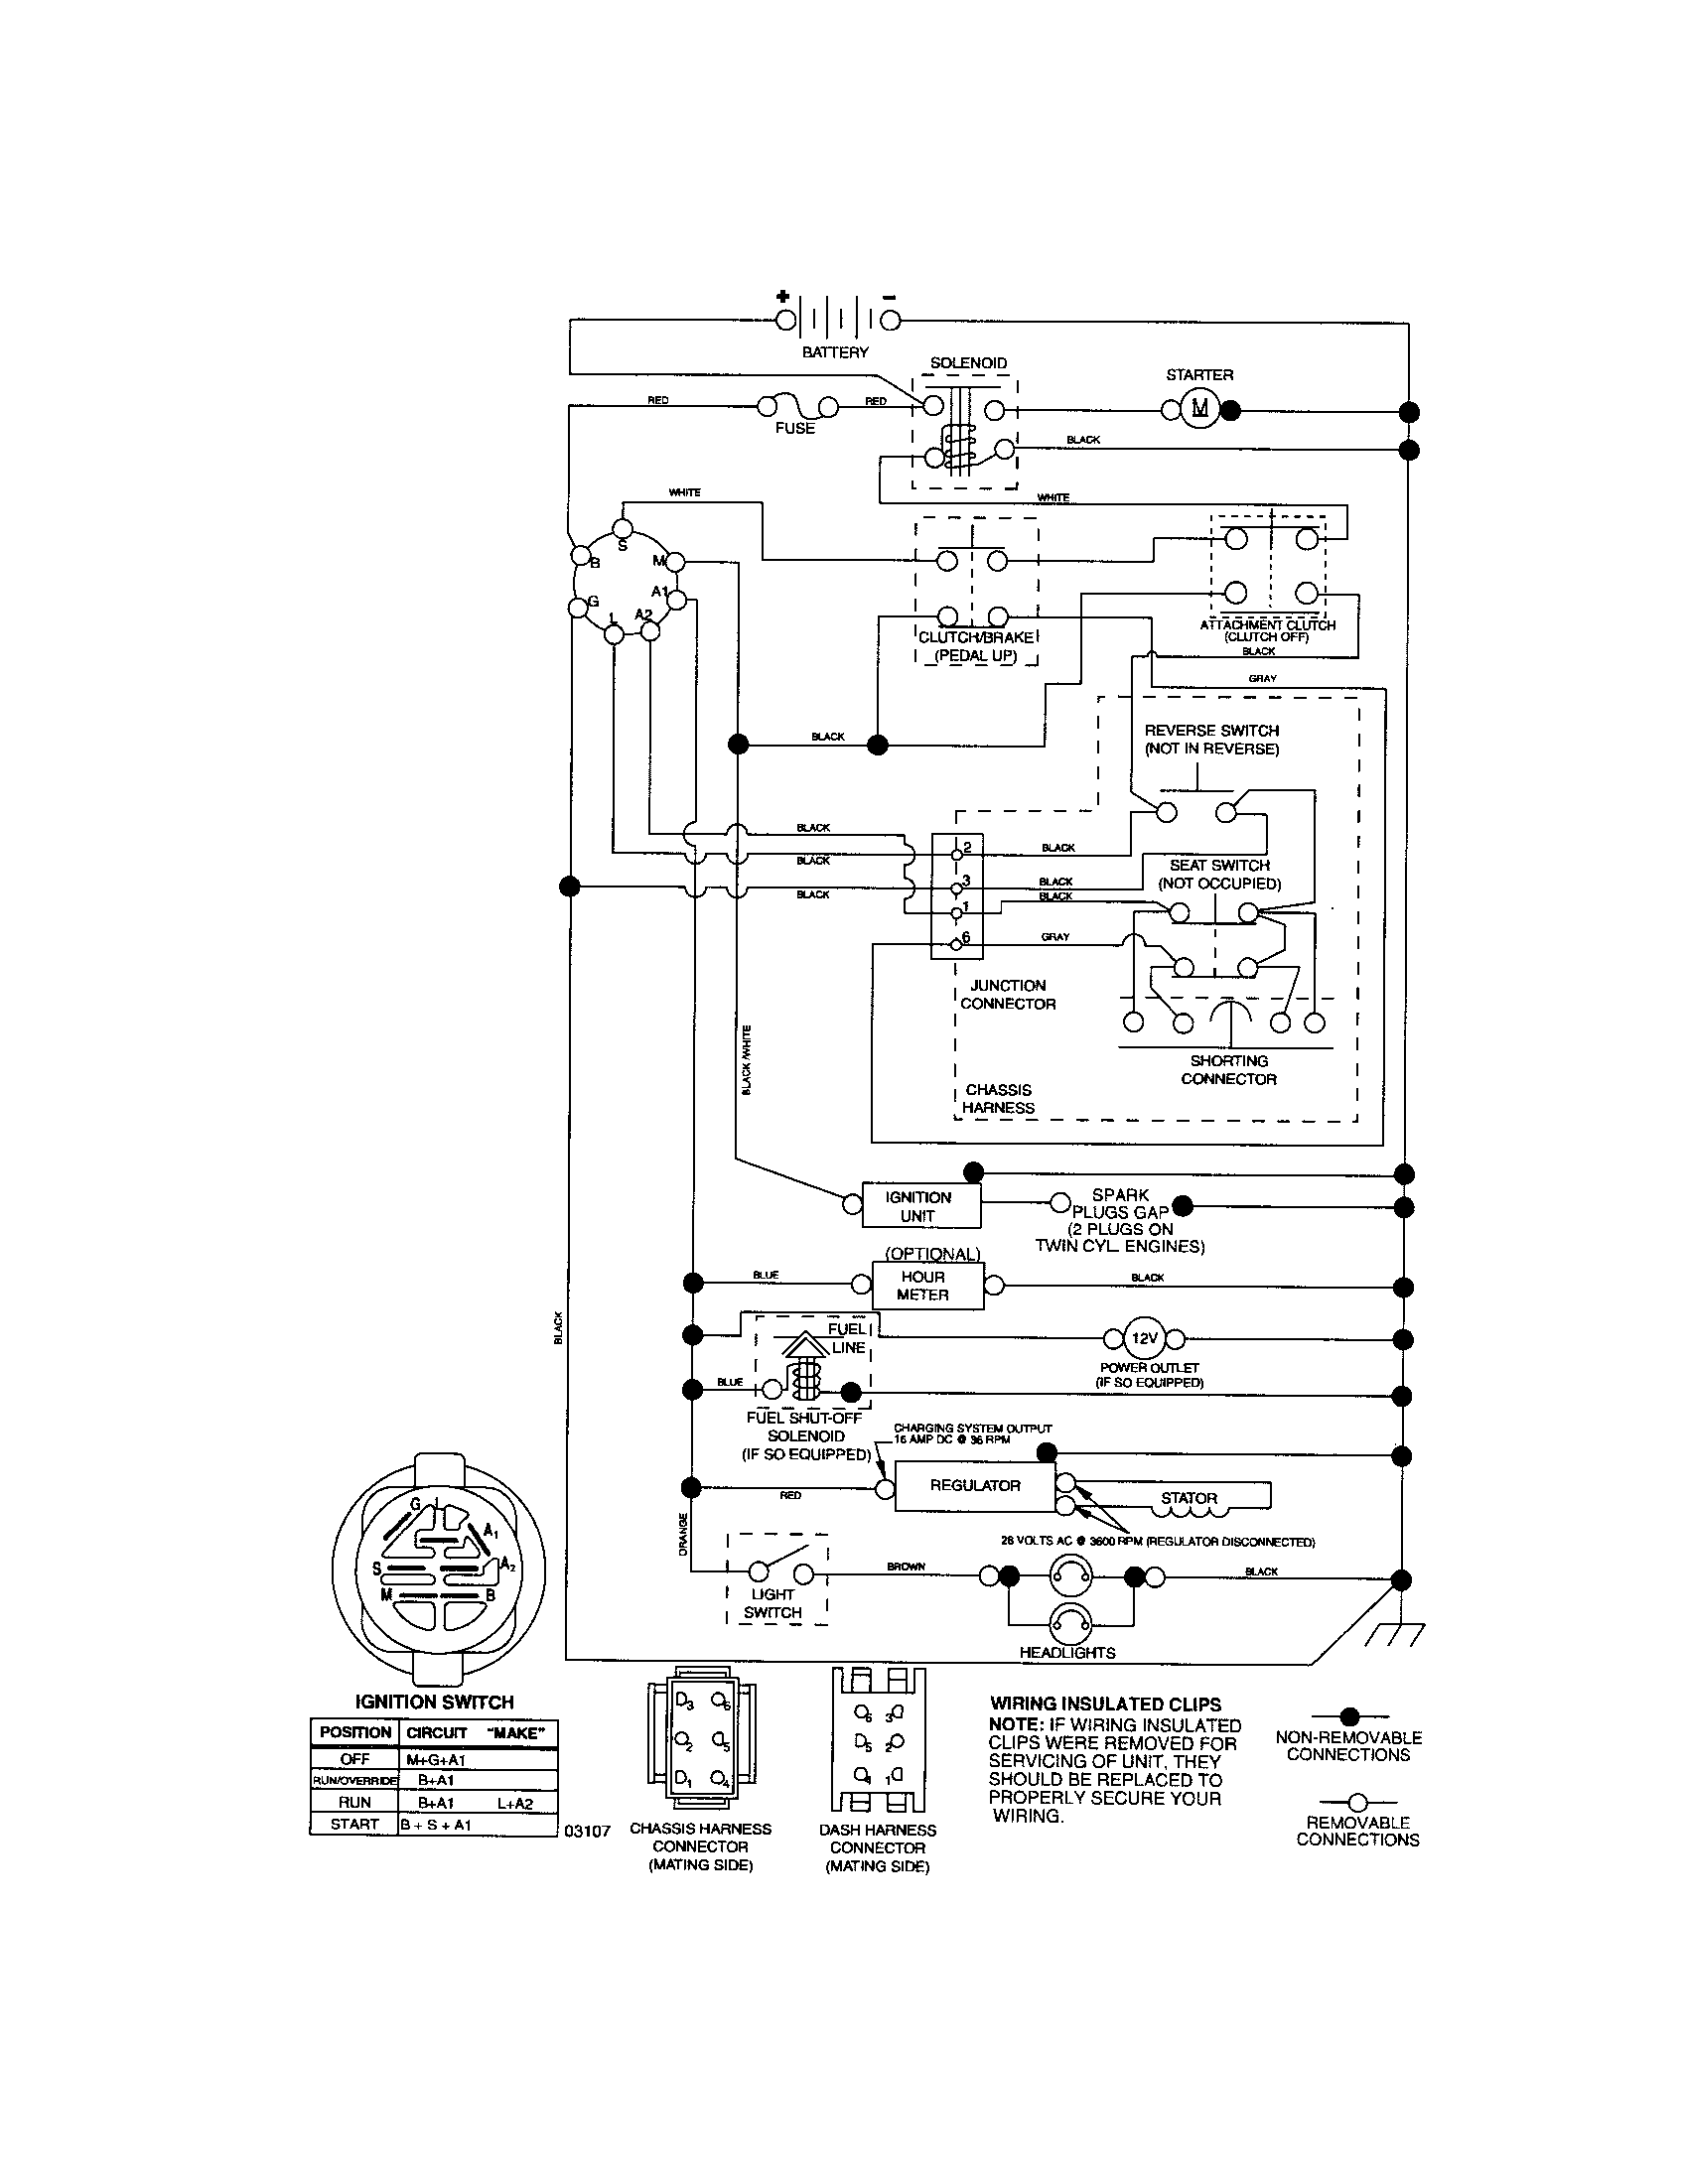 craftsman riding mower electrical diagram wiring diagram craftsmancraftsman riding mower electrical diagram wiring diagram craftsman riding [ 1696 x 2200 Pixel ]